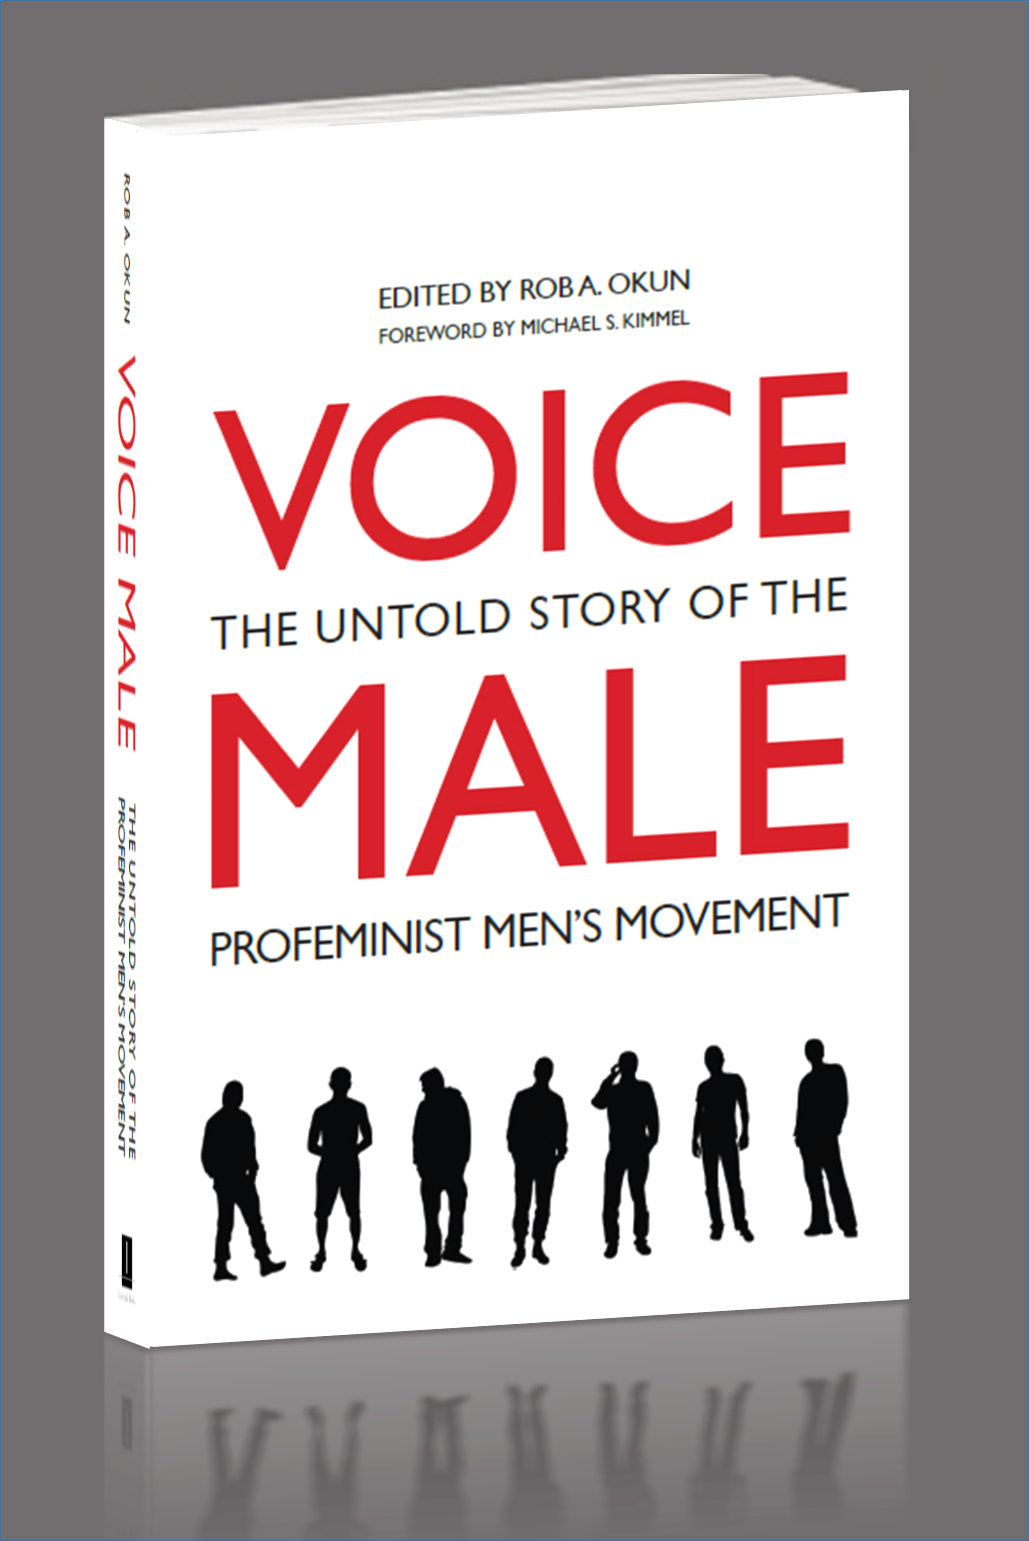 VOICE MALE: The Untold Story of the Profeminist Men's Movement.